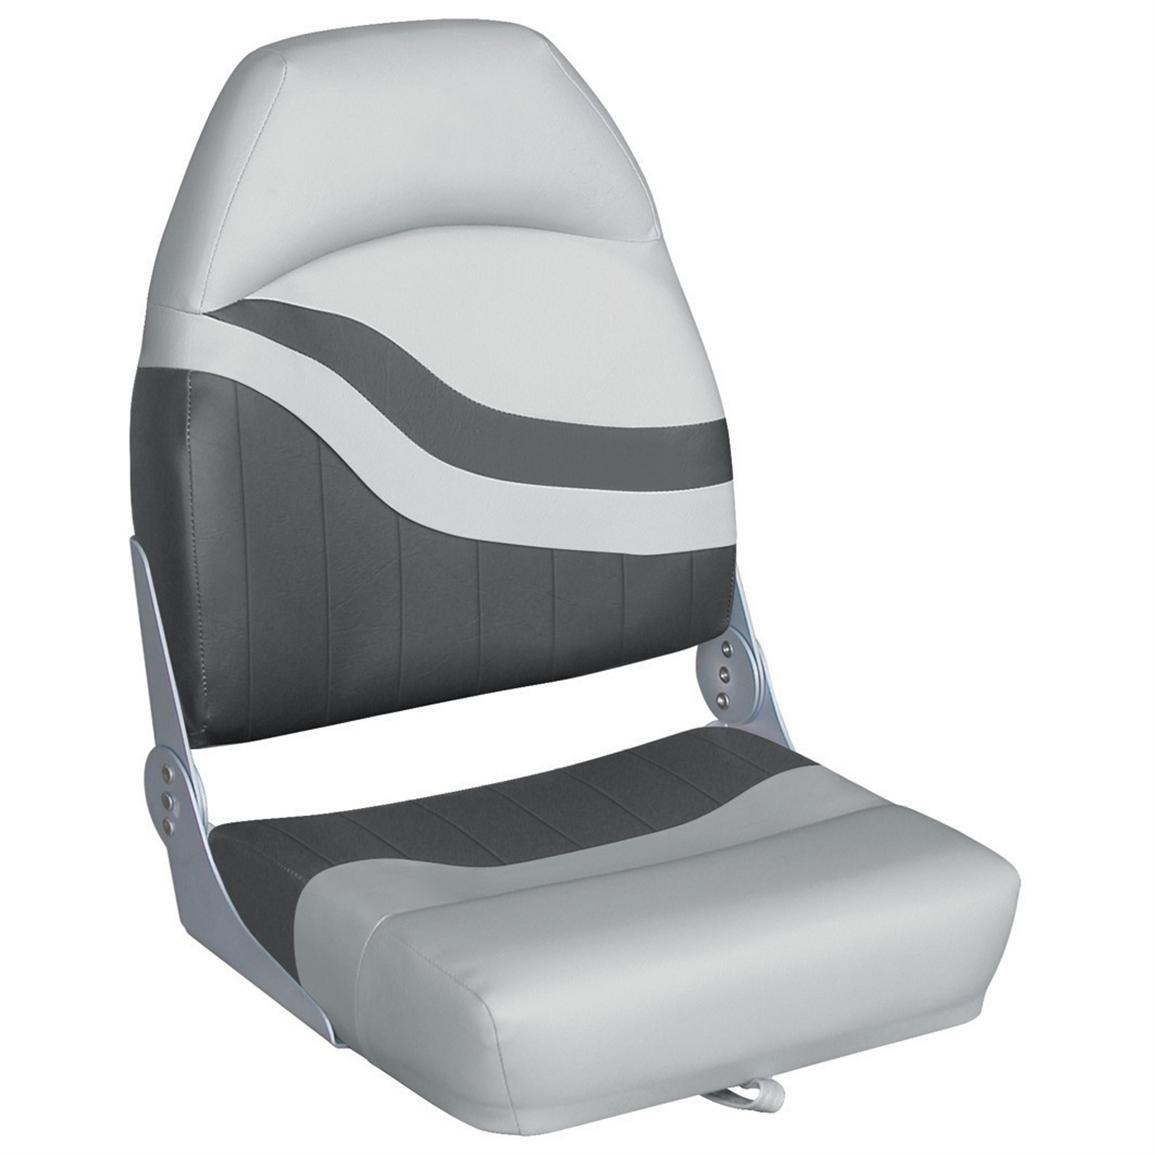 Wise® Weekender Series Boat Seat, Grey / Charcoal